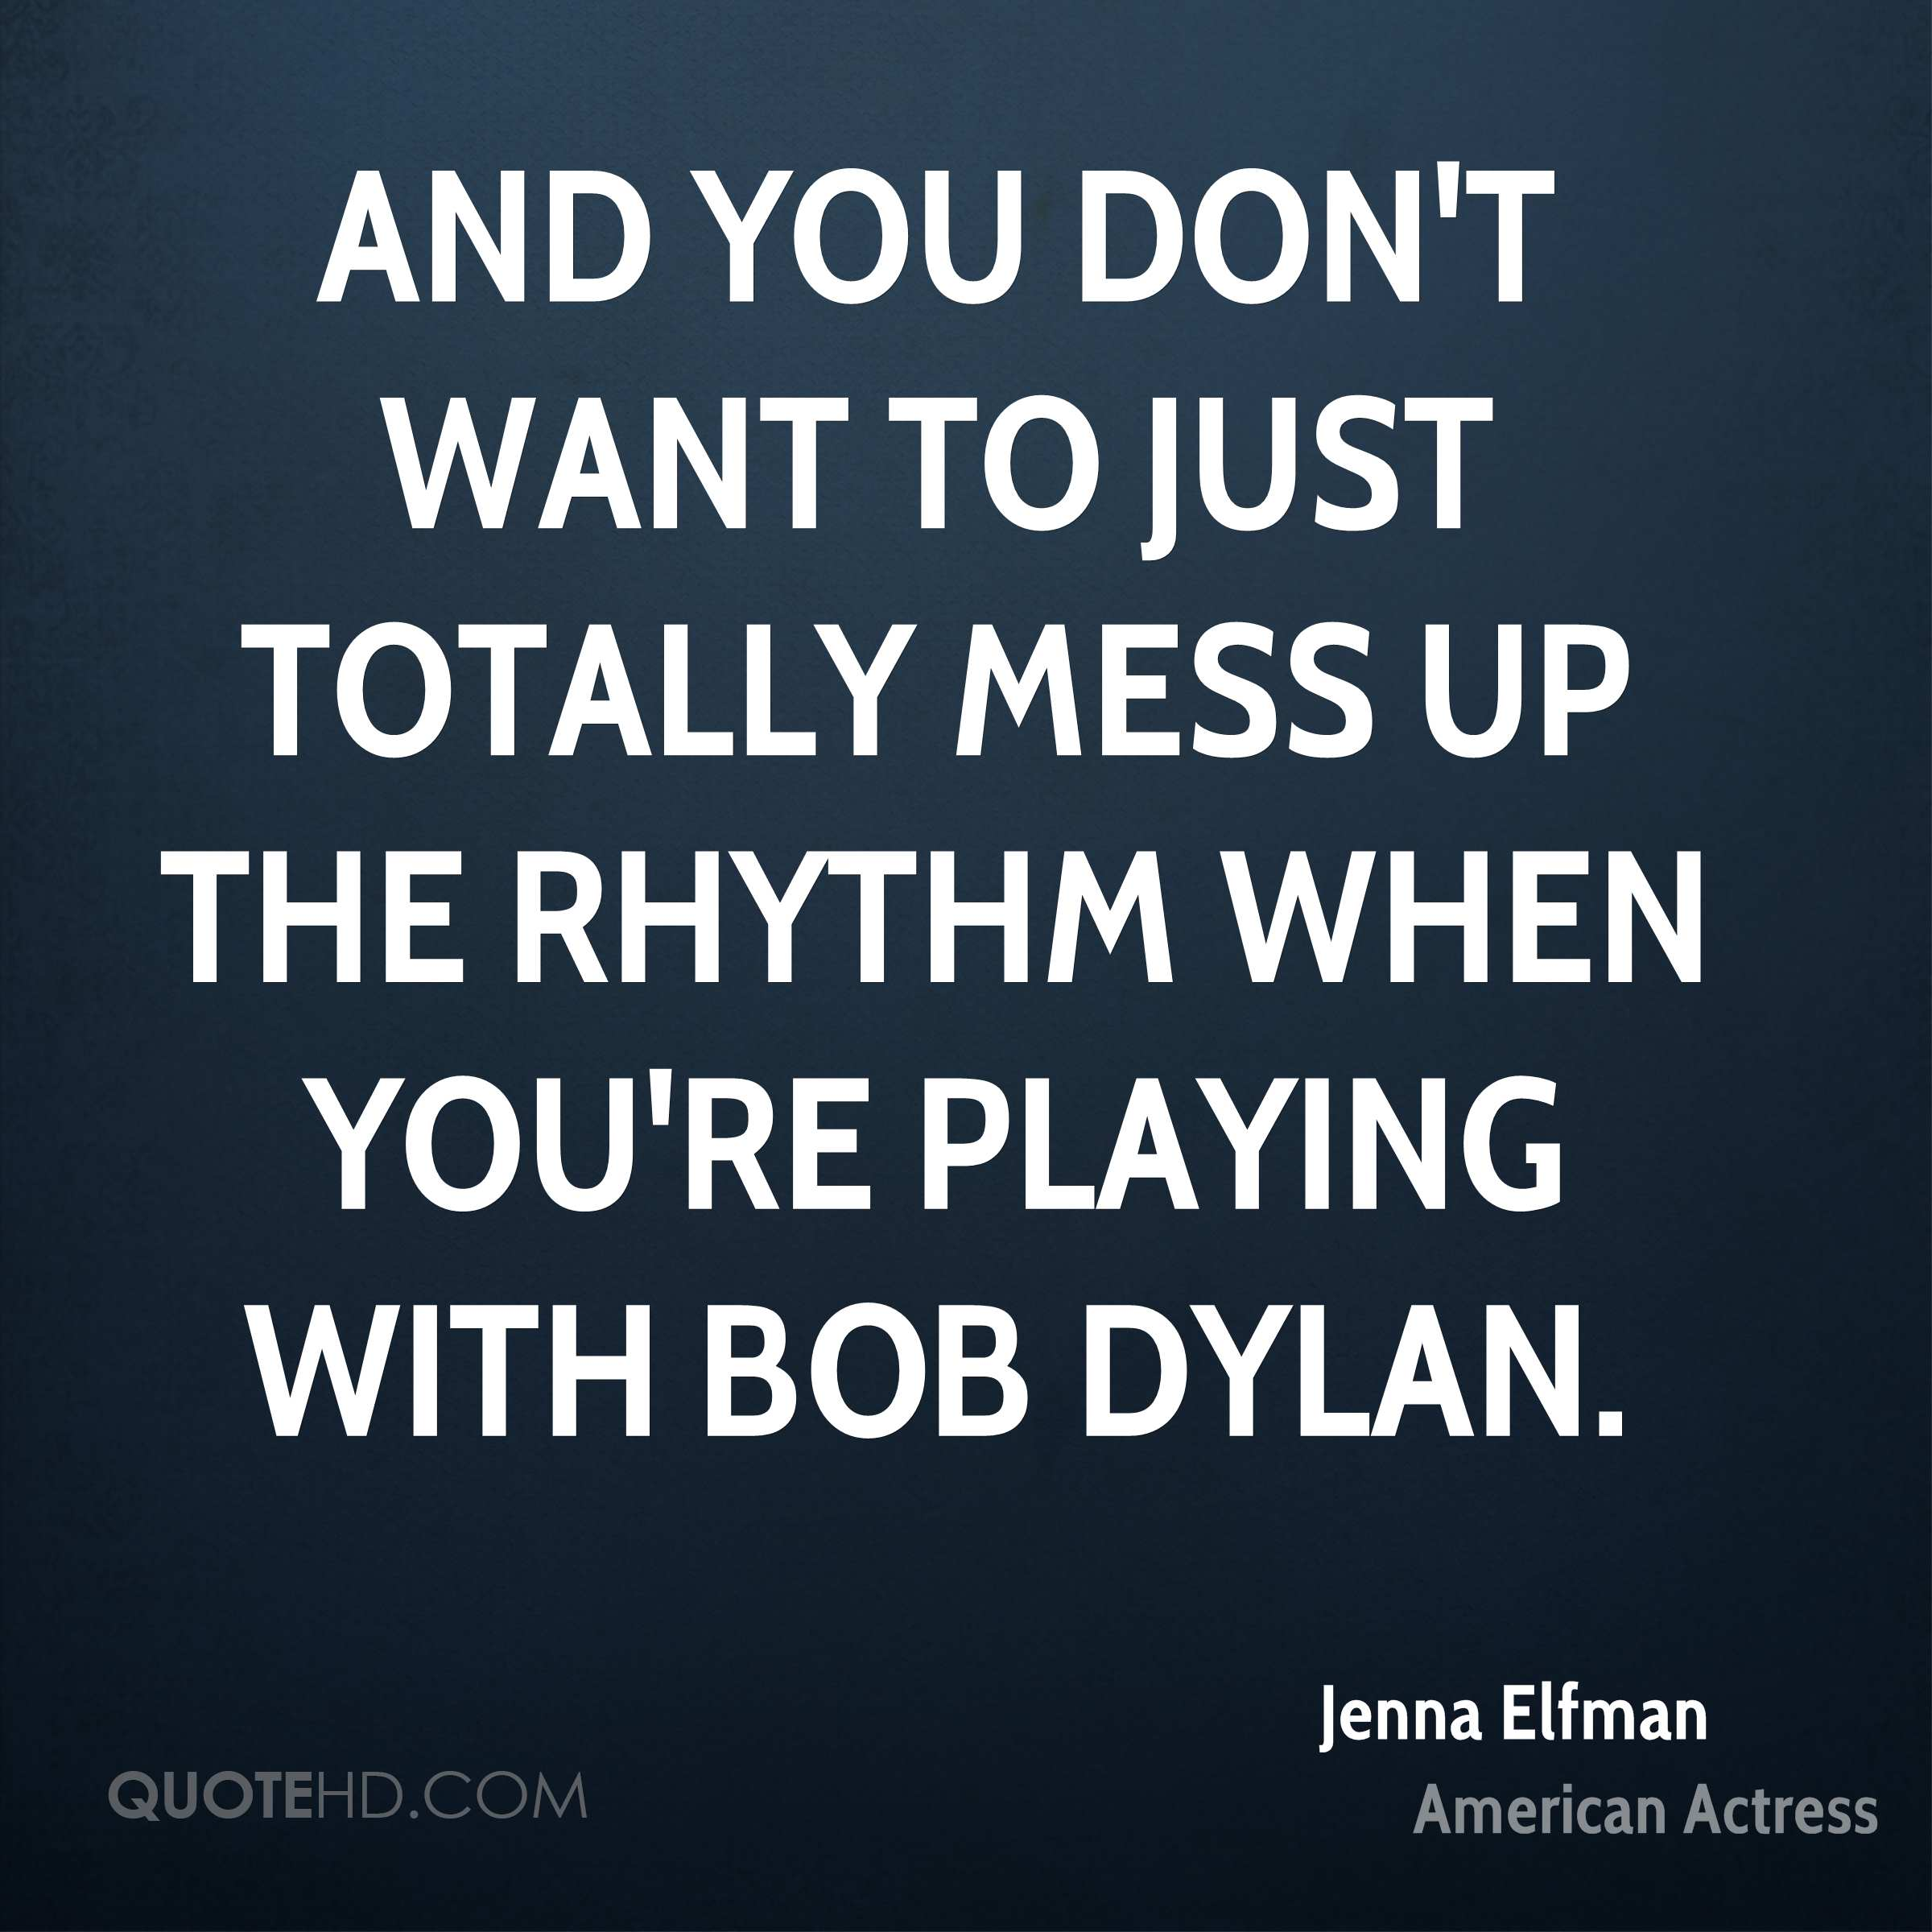 And you don't want to just totally mess up the rhythm when you're playing with Bob Dylan.